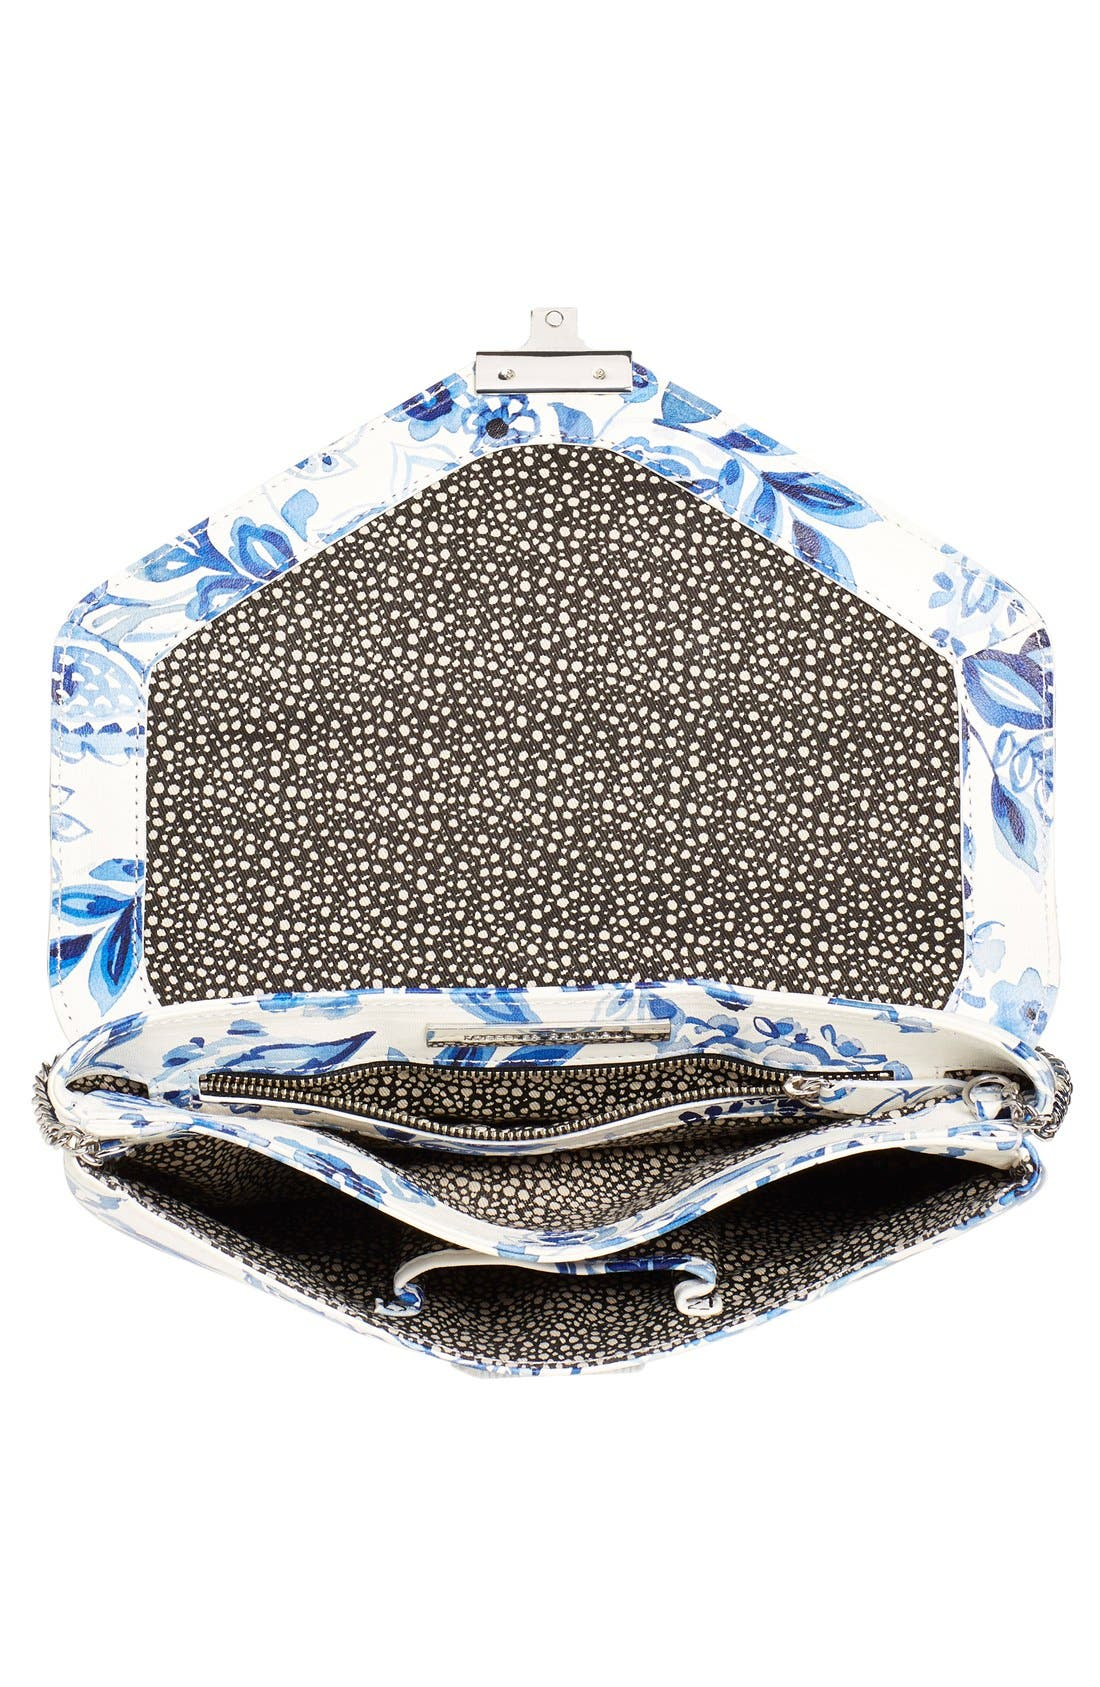 Alternate Image 4  - Loeffler Randall 'Lock' Floral Print Leather Clutch